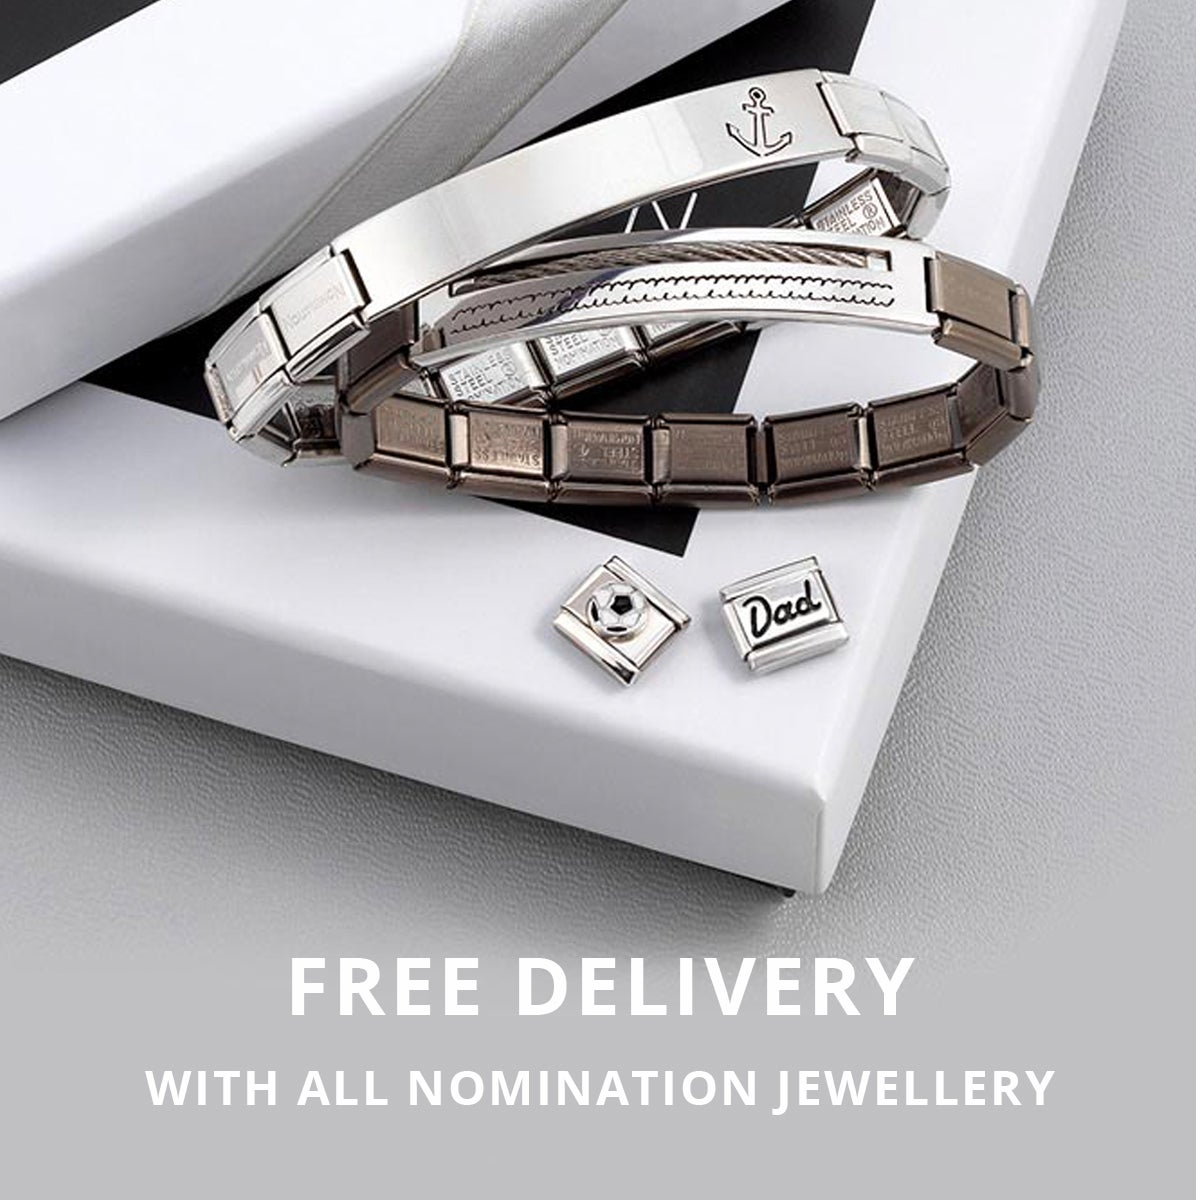 Free Delivery Nomination